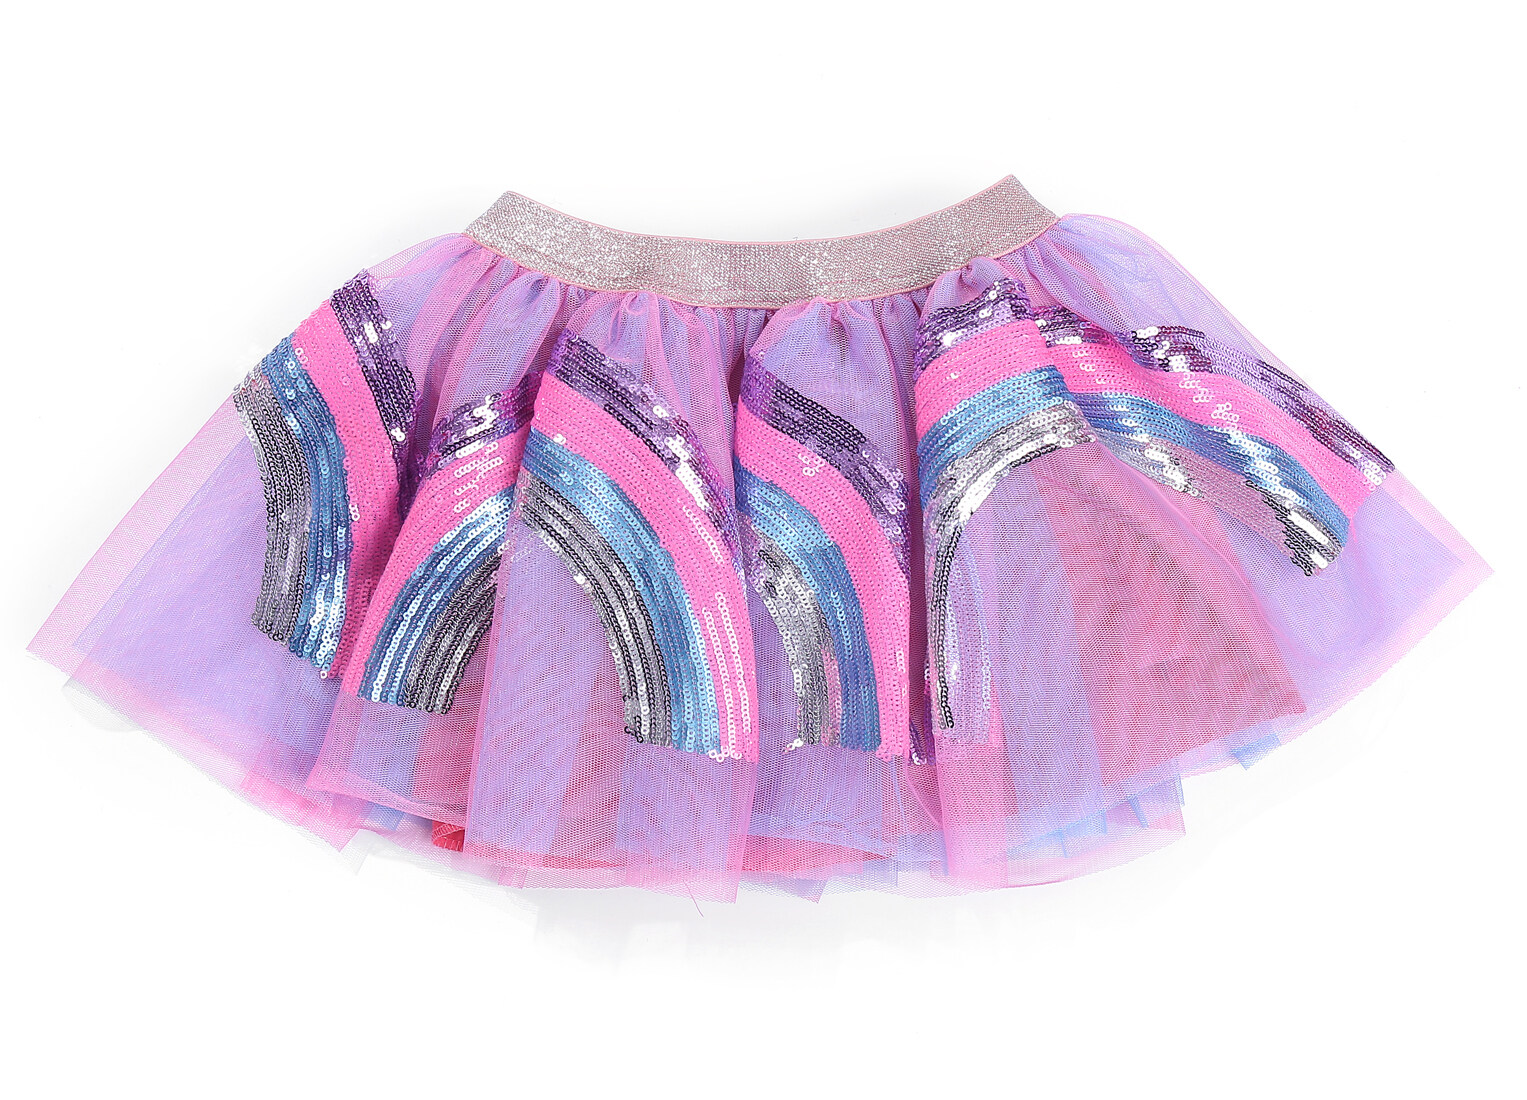 WGOODTECK Baby Girl/'s 3 Layered Ruffle Bloomer Cute Sequin Stars Diaper Cover